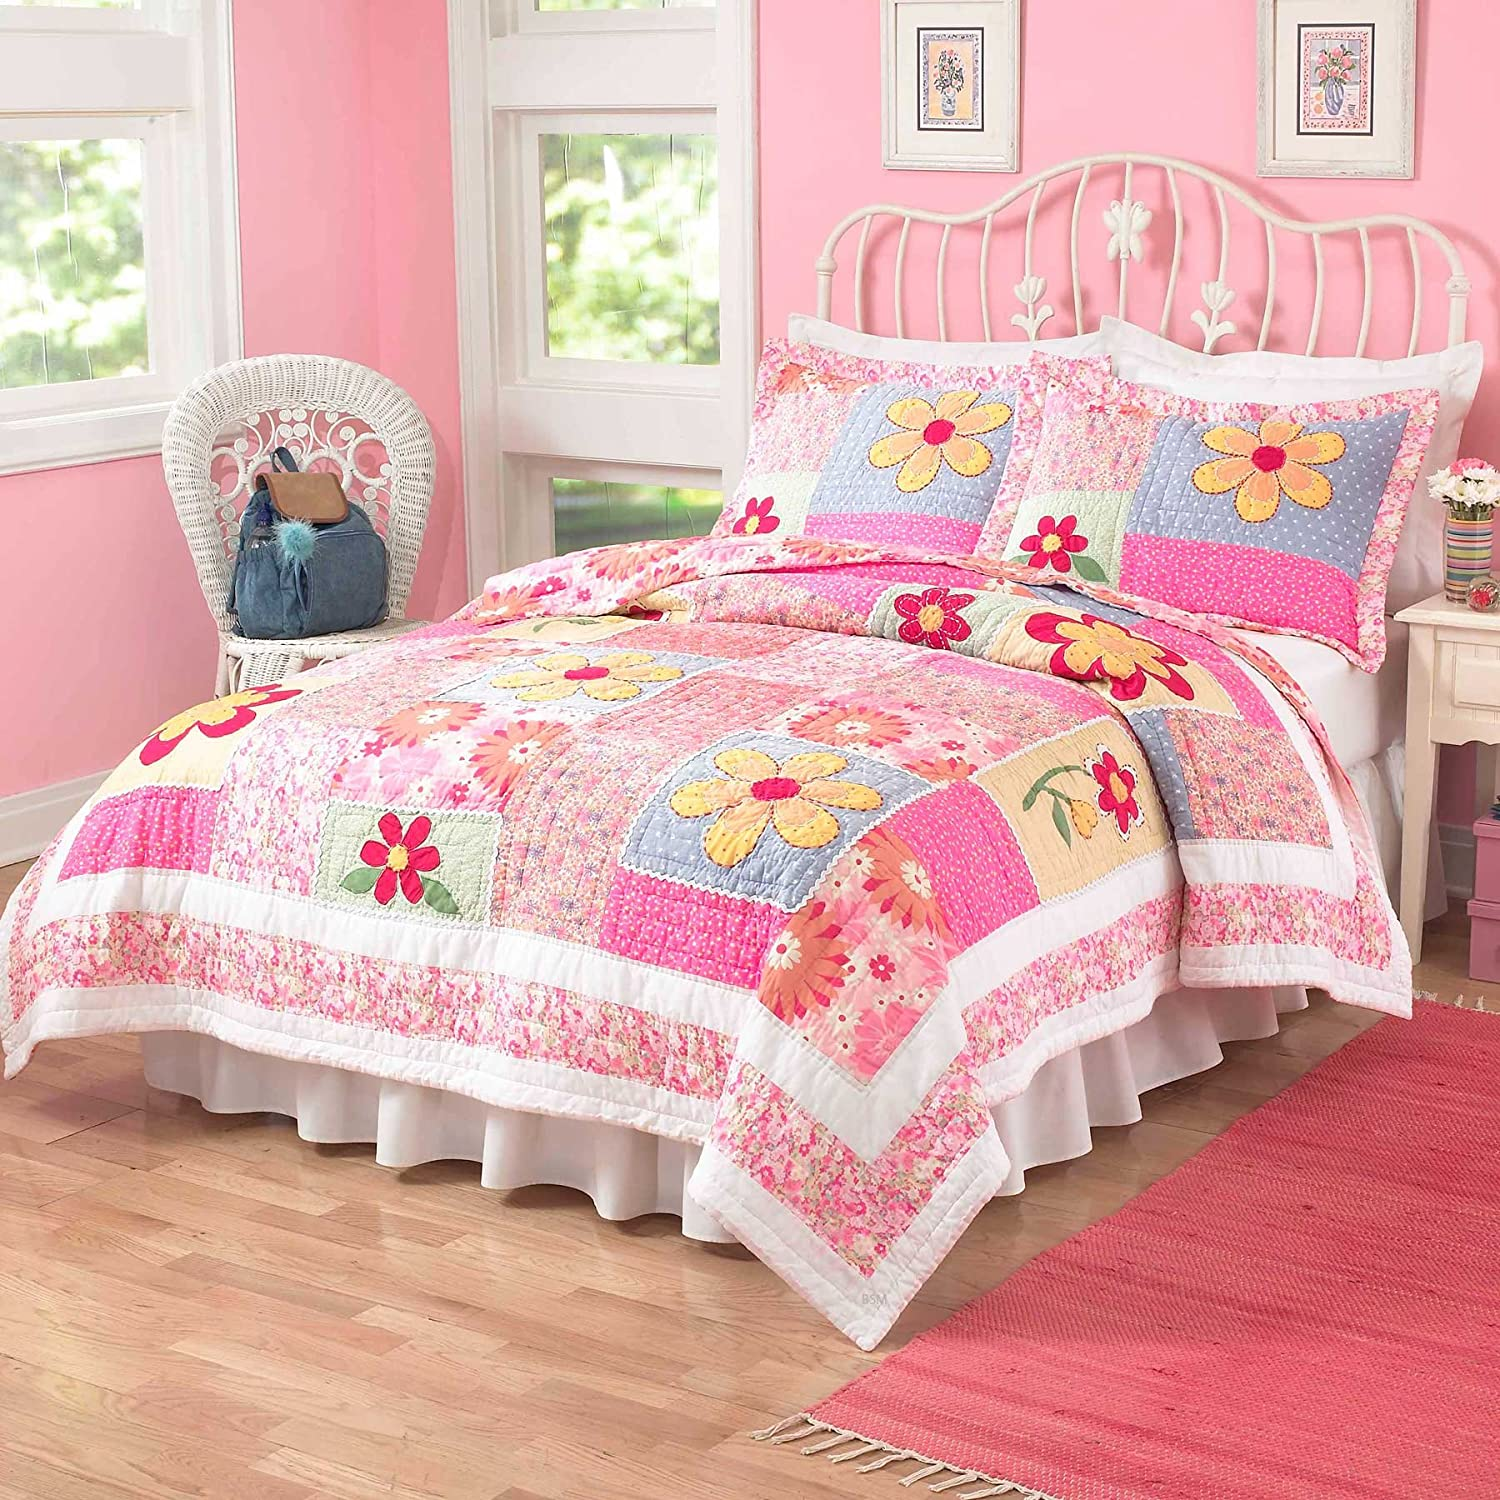 Olivia Pink Girls Quilt with Pillow Sham(s), Twin Pem America QS1327TW-2300